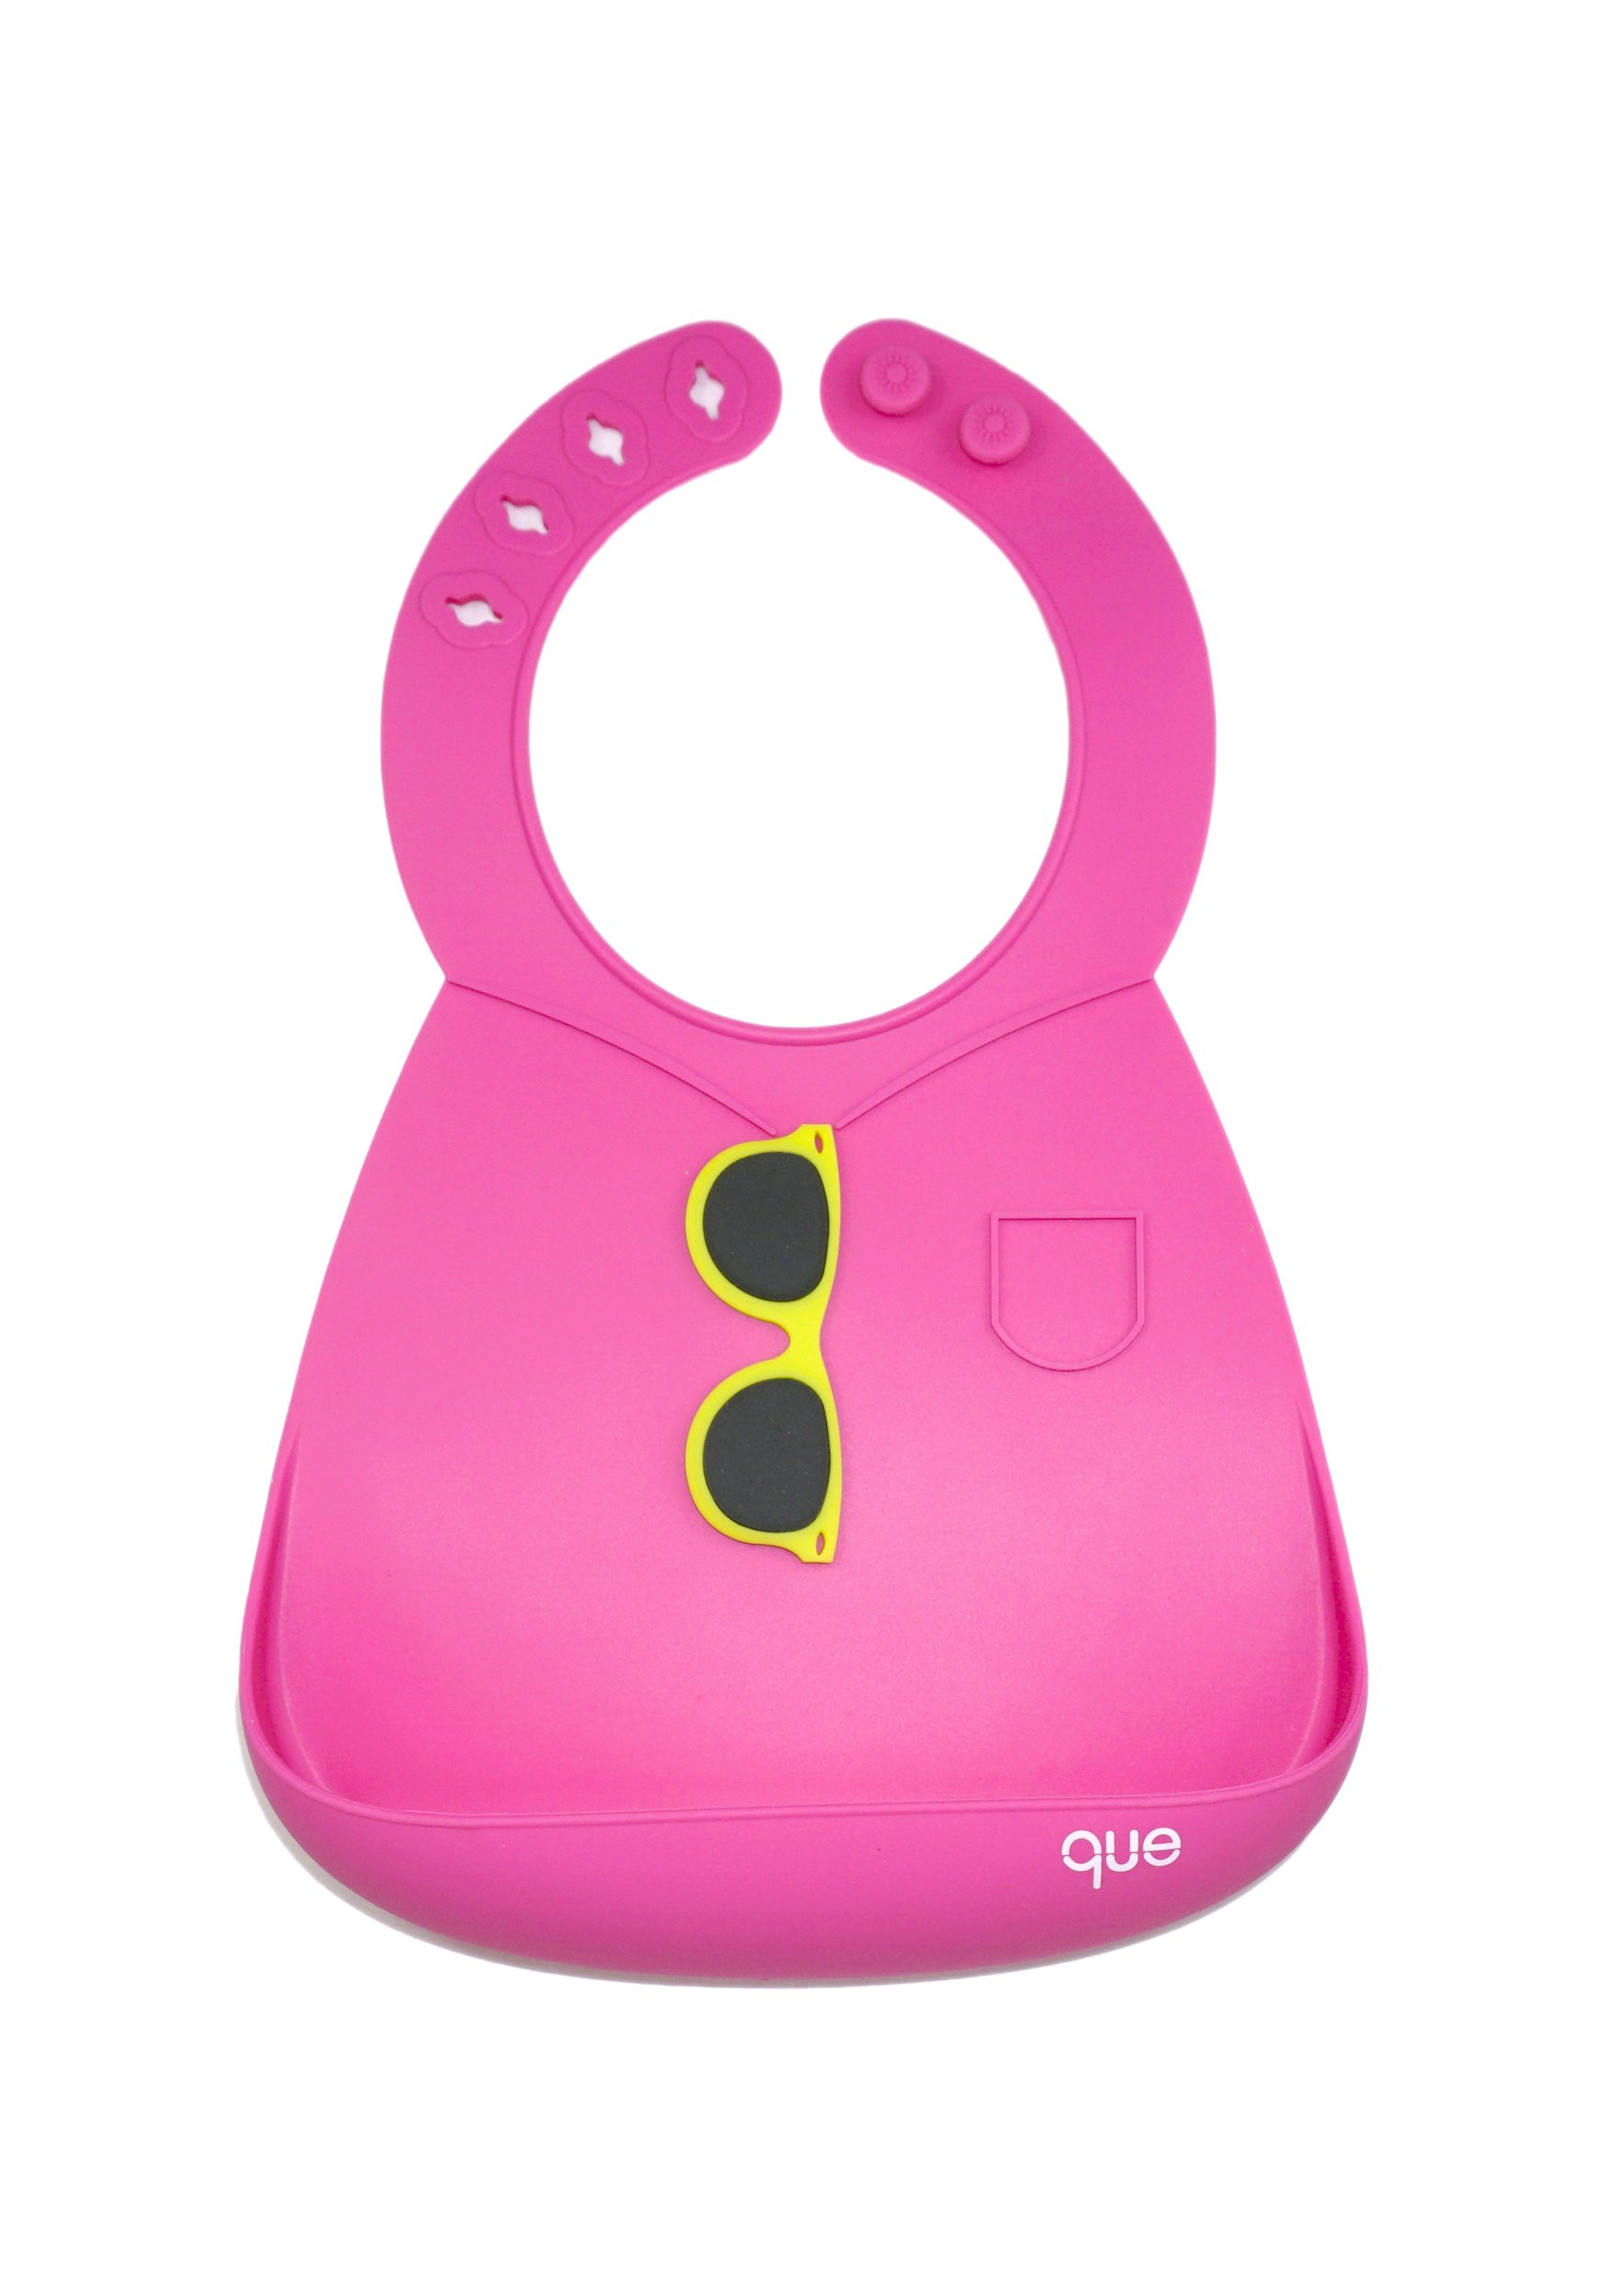 BPA-Free, Waterproof, Soft, and Adjustable Silicone Baby Bibs! Lightweight, durable and easy to clean! Keep your baby happy & in style, spend less time cleaning! - que Bib